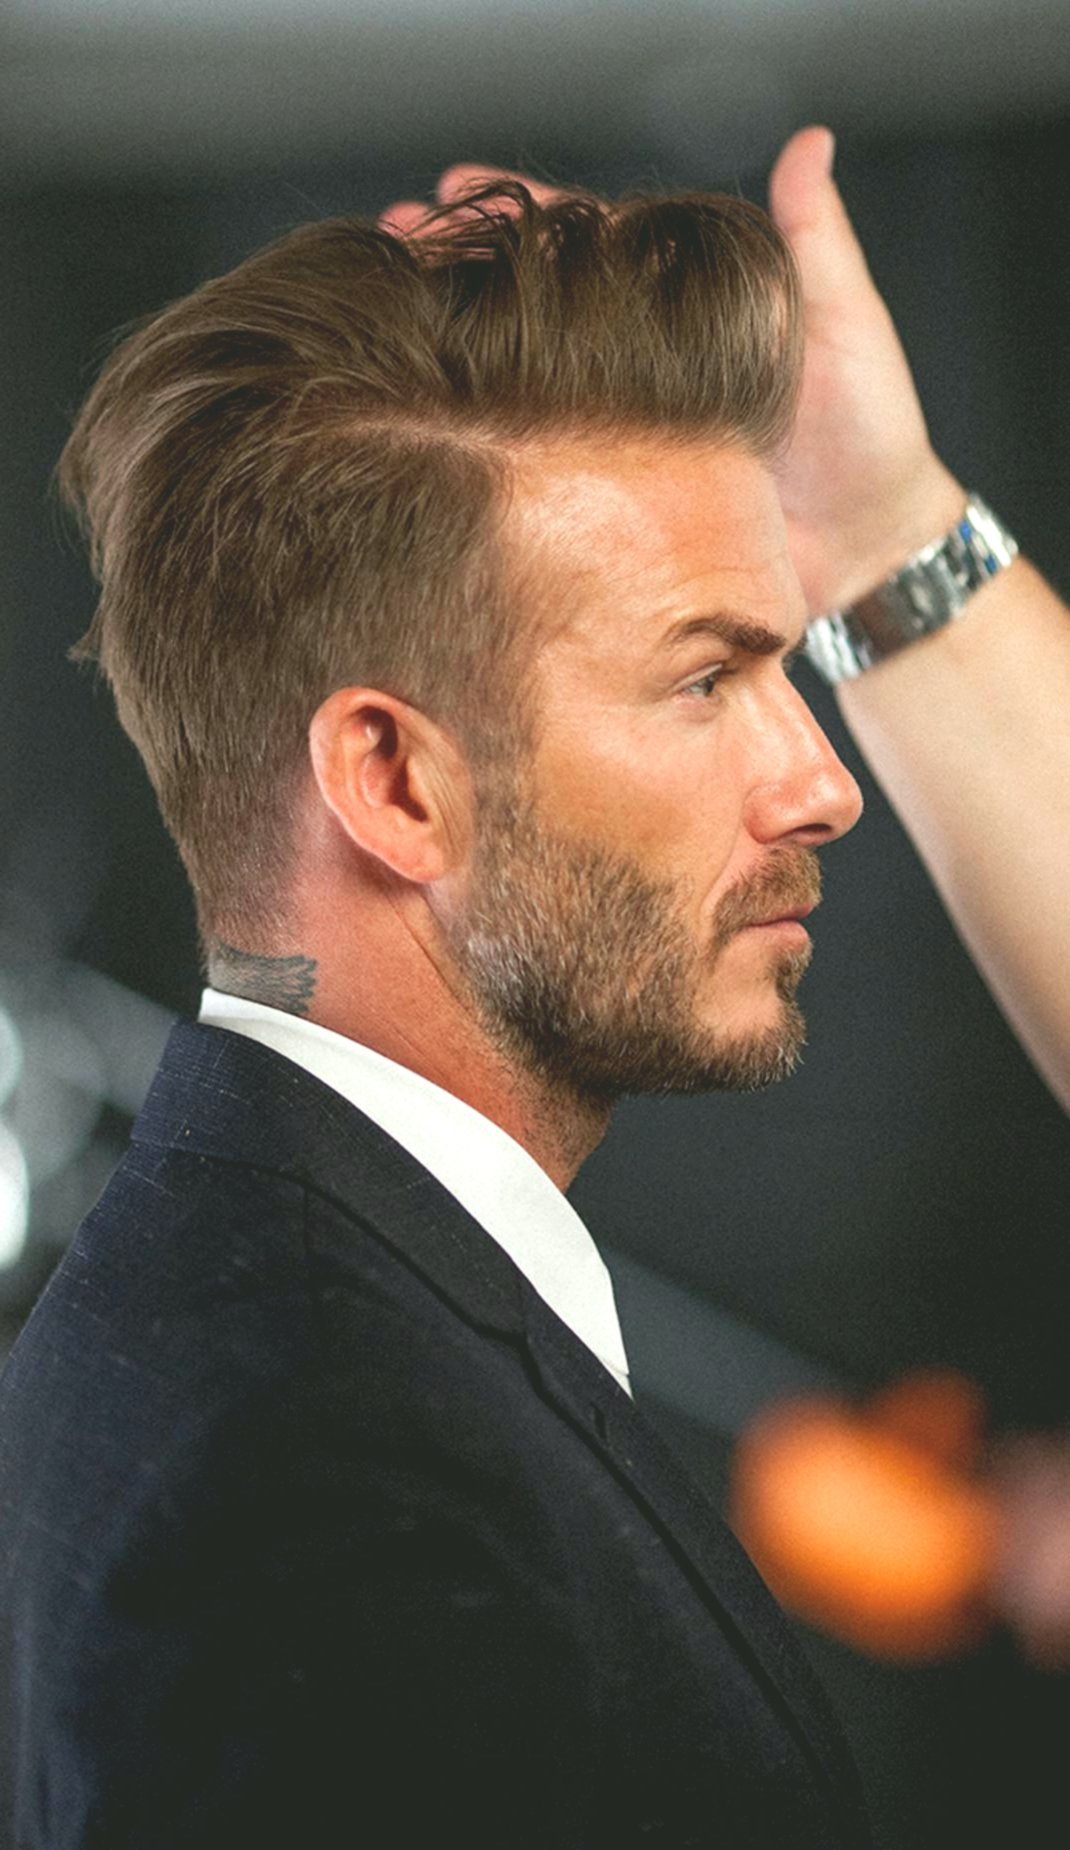 Handsome men hairstyling high brow inspiration-Modern man hairstyles High brow layout